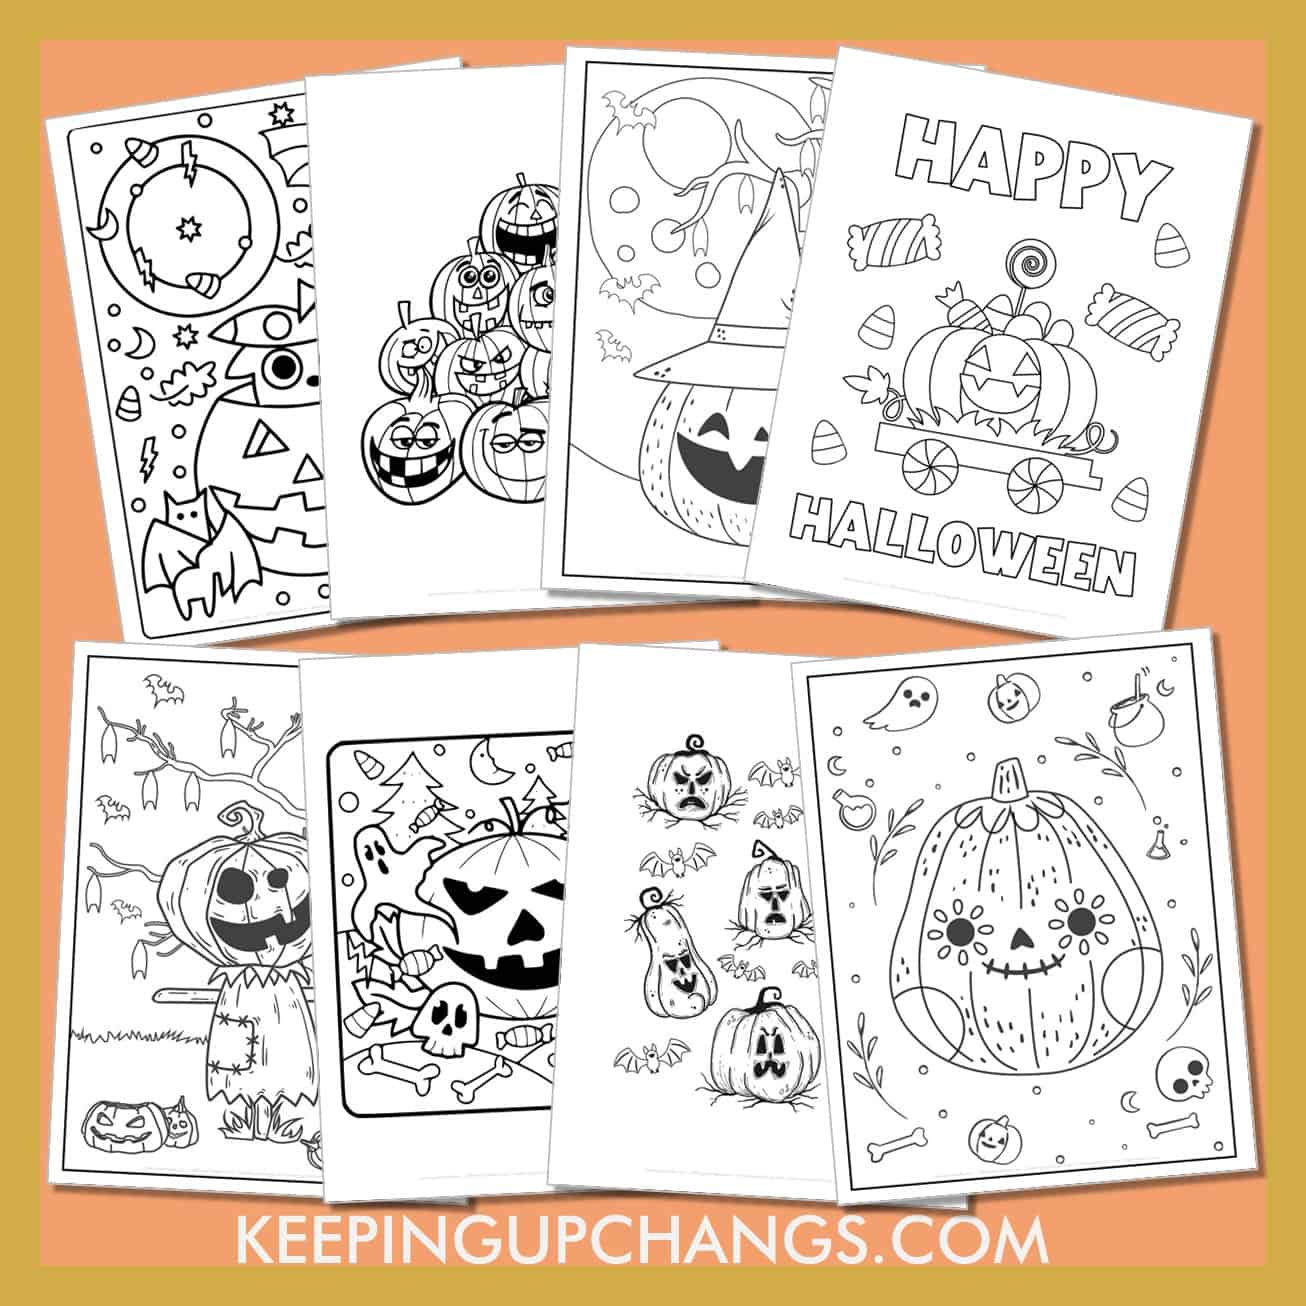 halloween pumpkin colouring sheets including jack o lanterns, candy, scarecrows, sugar skulls and more.